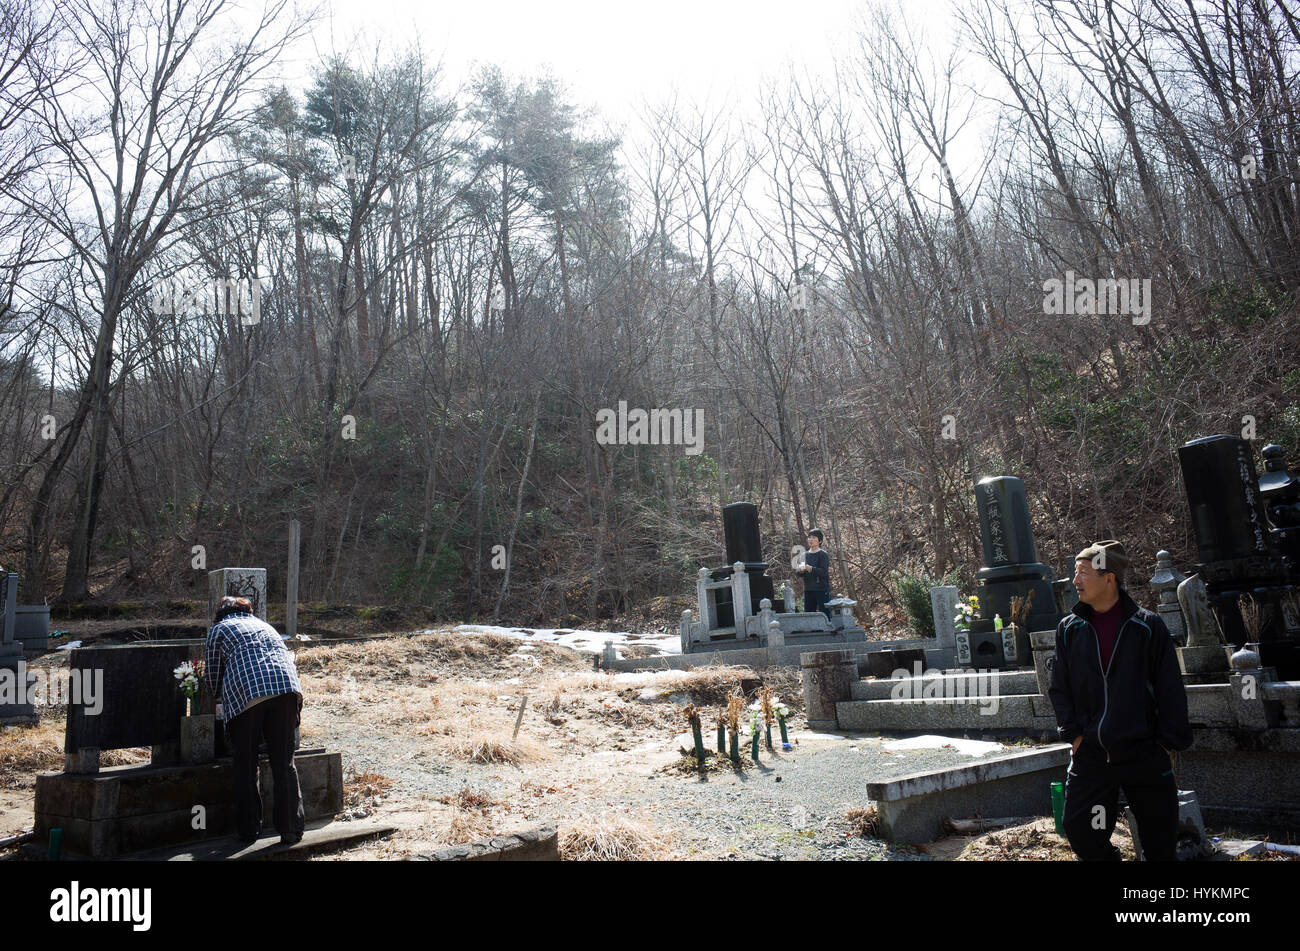 OTAMA VILLAGE, FUKUSHIMA: Toshinori and Keiko at a cemetery. ONE FAMILY'S five-year struggle to overcome the Fukushima - Stock Image